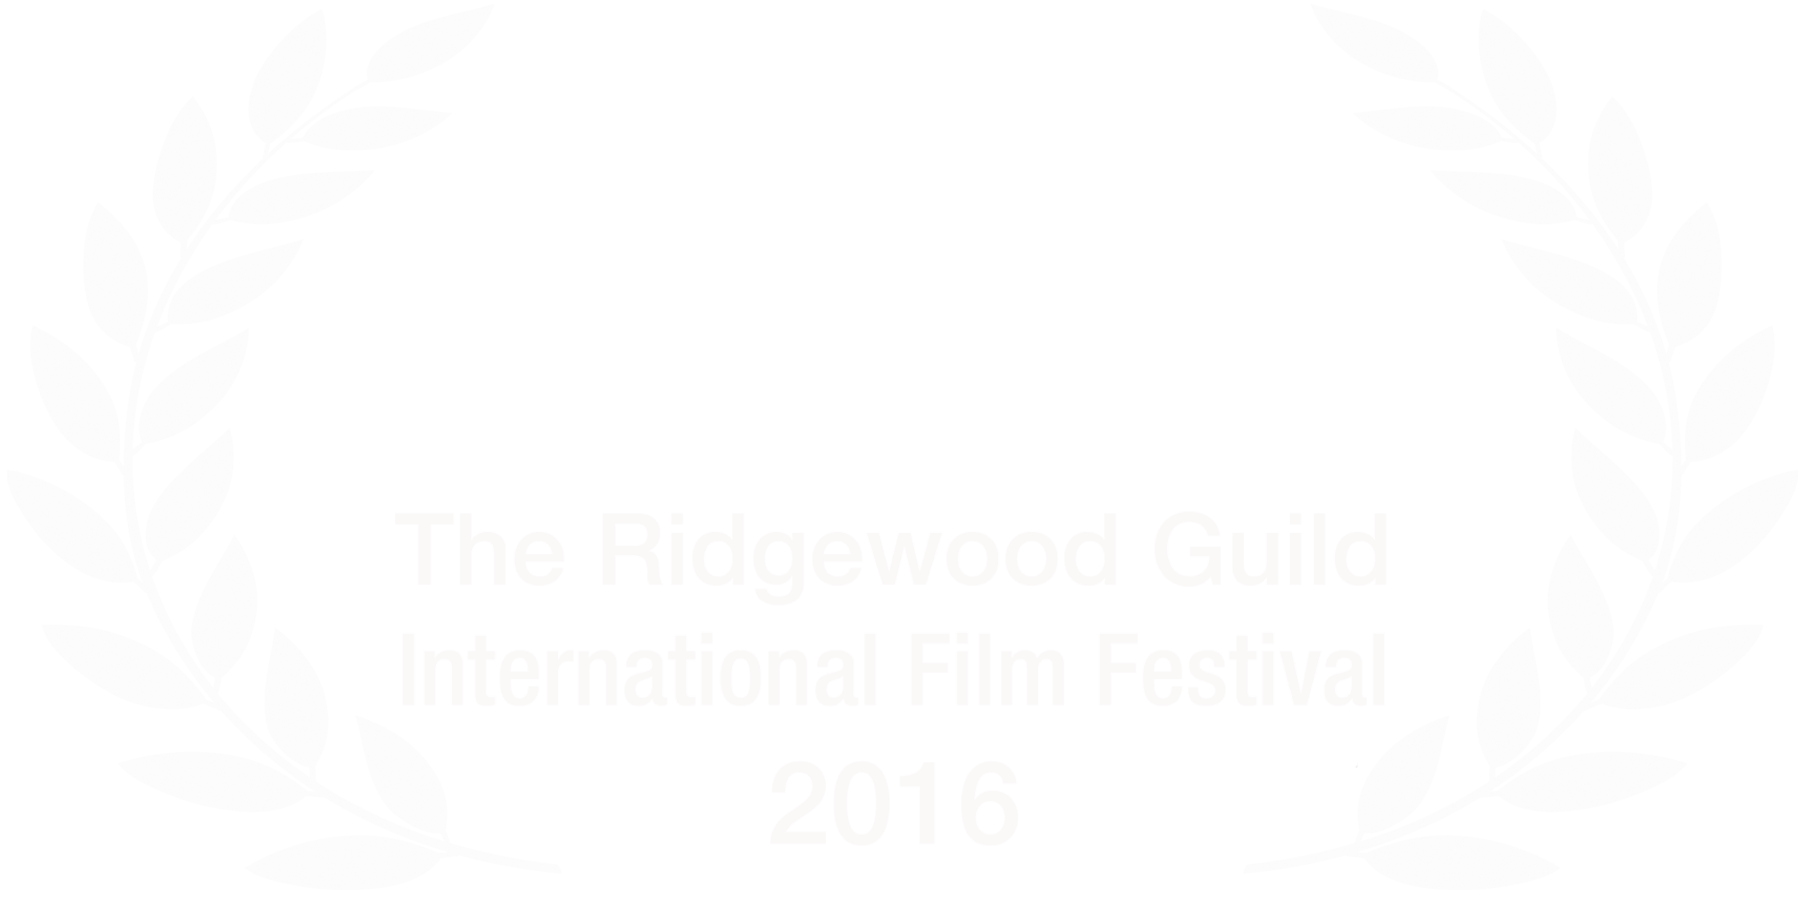 Ridewood Int'l Film Festival Best Documentary Award